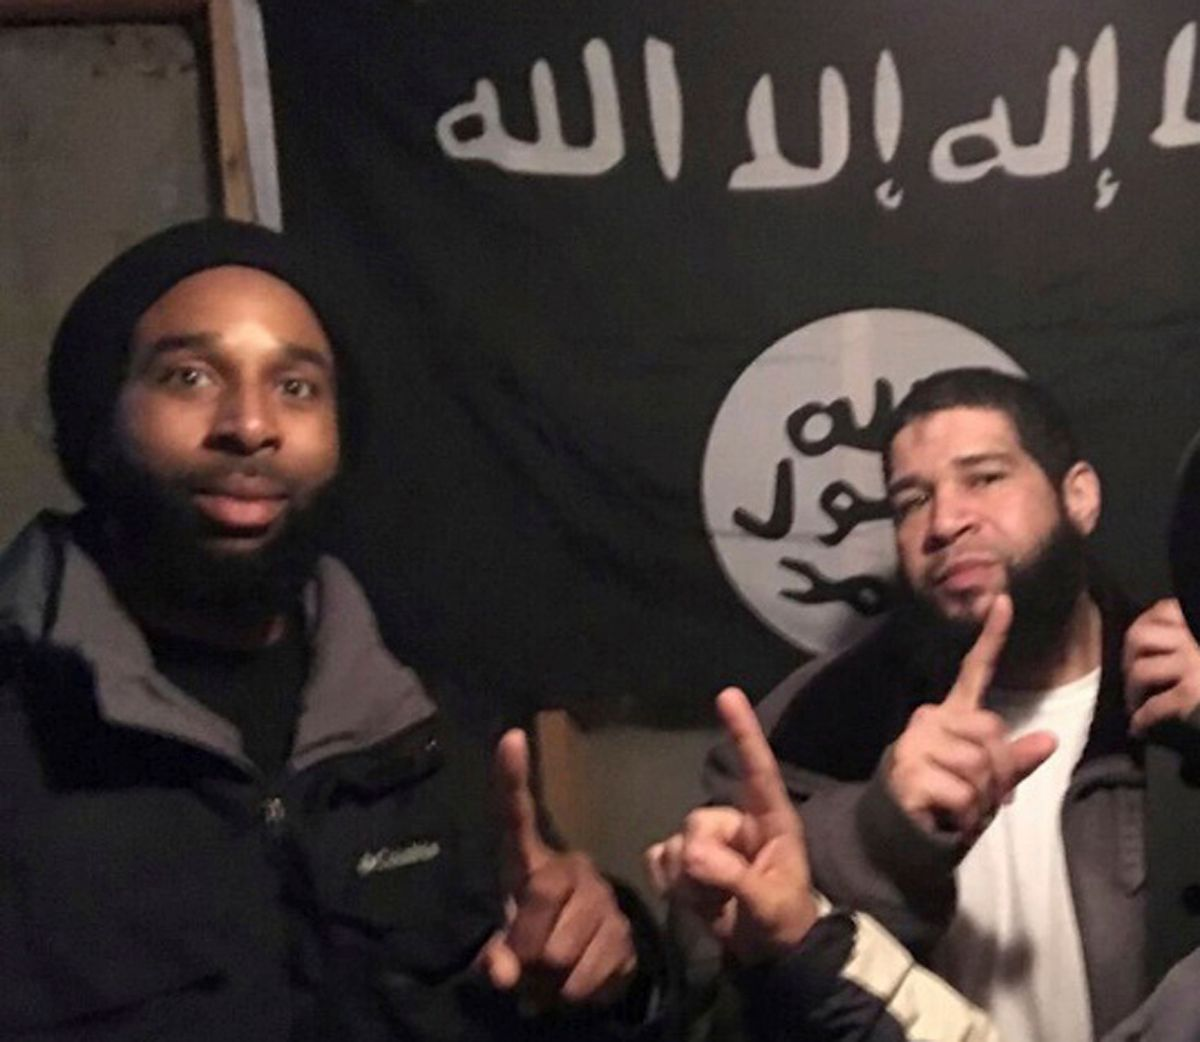 In this undated photo provided by the Federal Bureau of Investigation Joseph D. Jones, left, and Edward Schimenti pose in front of an Islamic State group flag. Jones and Schimenti were arrested by FBI agents on Wednesday, April 12, 2017 on terrorist charges for allegedly conspiring to support the Islamic State militant group. (FBI via AP) (AP)